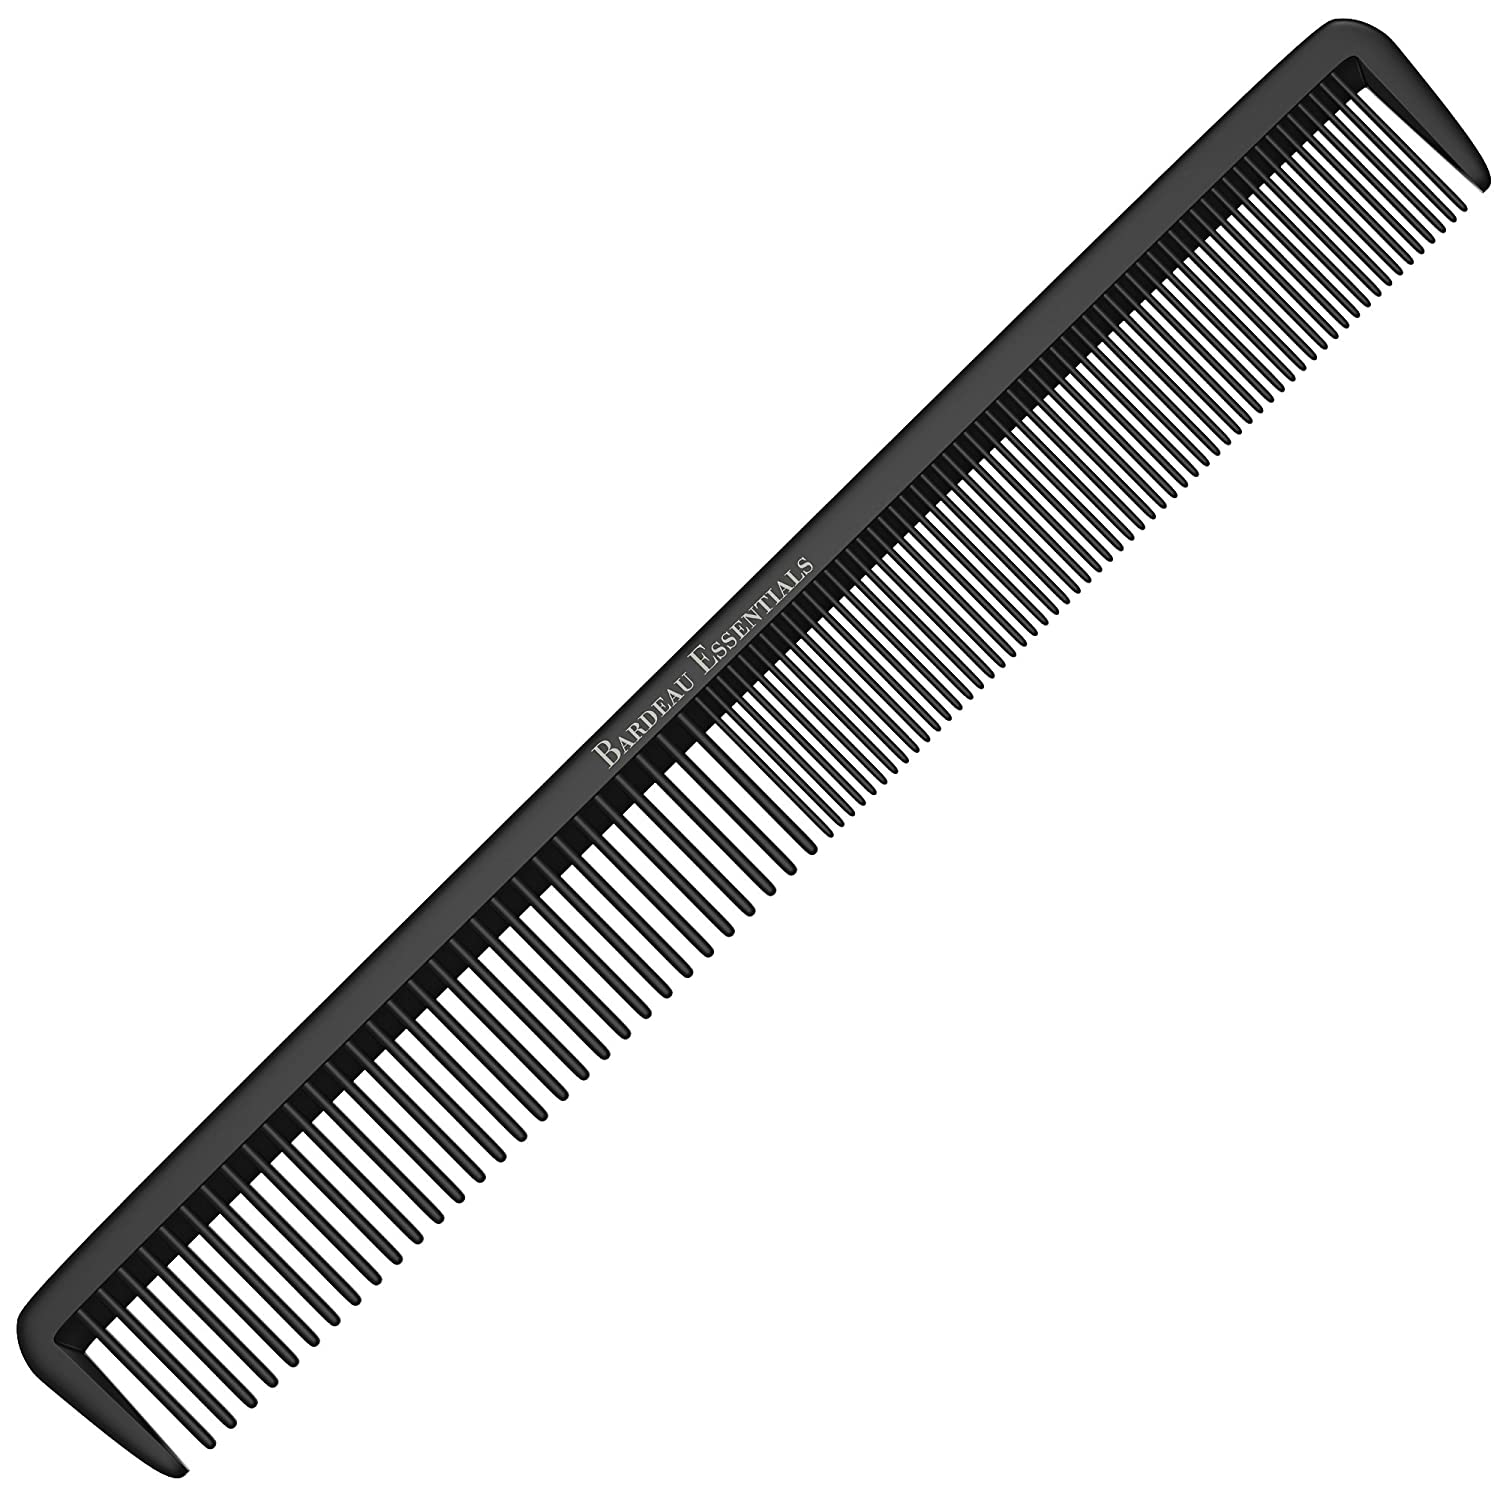 """Styling Comb - Professional 8.75"""" Black Carbon Fiber Anti Static Chemical And Heat Resistant Hair Combs For All Hair Types For Men and Women - By Bardeau Essentials"""